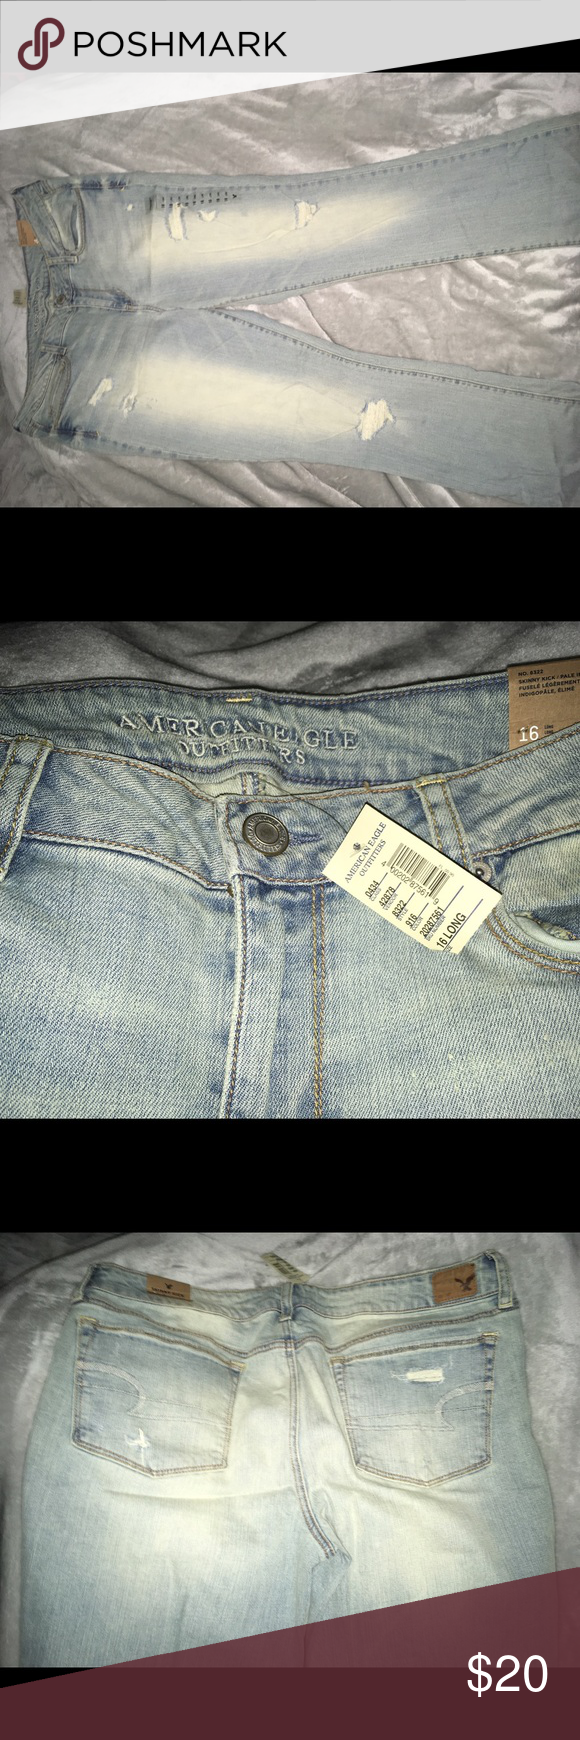 American eagle skinny kick jeans nwt eagle size and jeans size